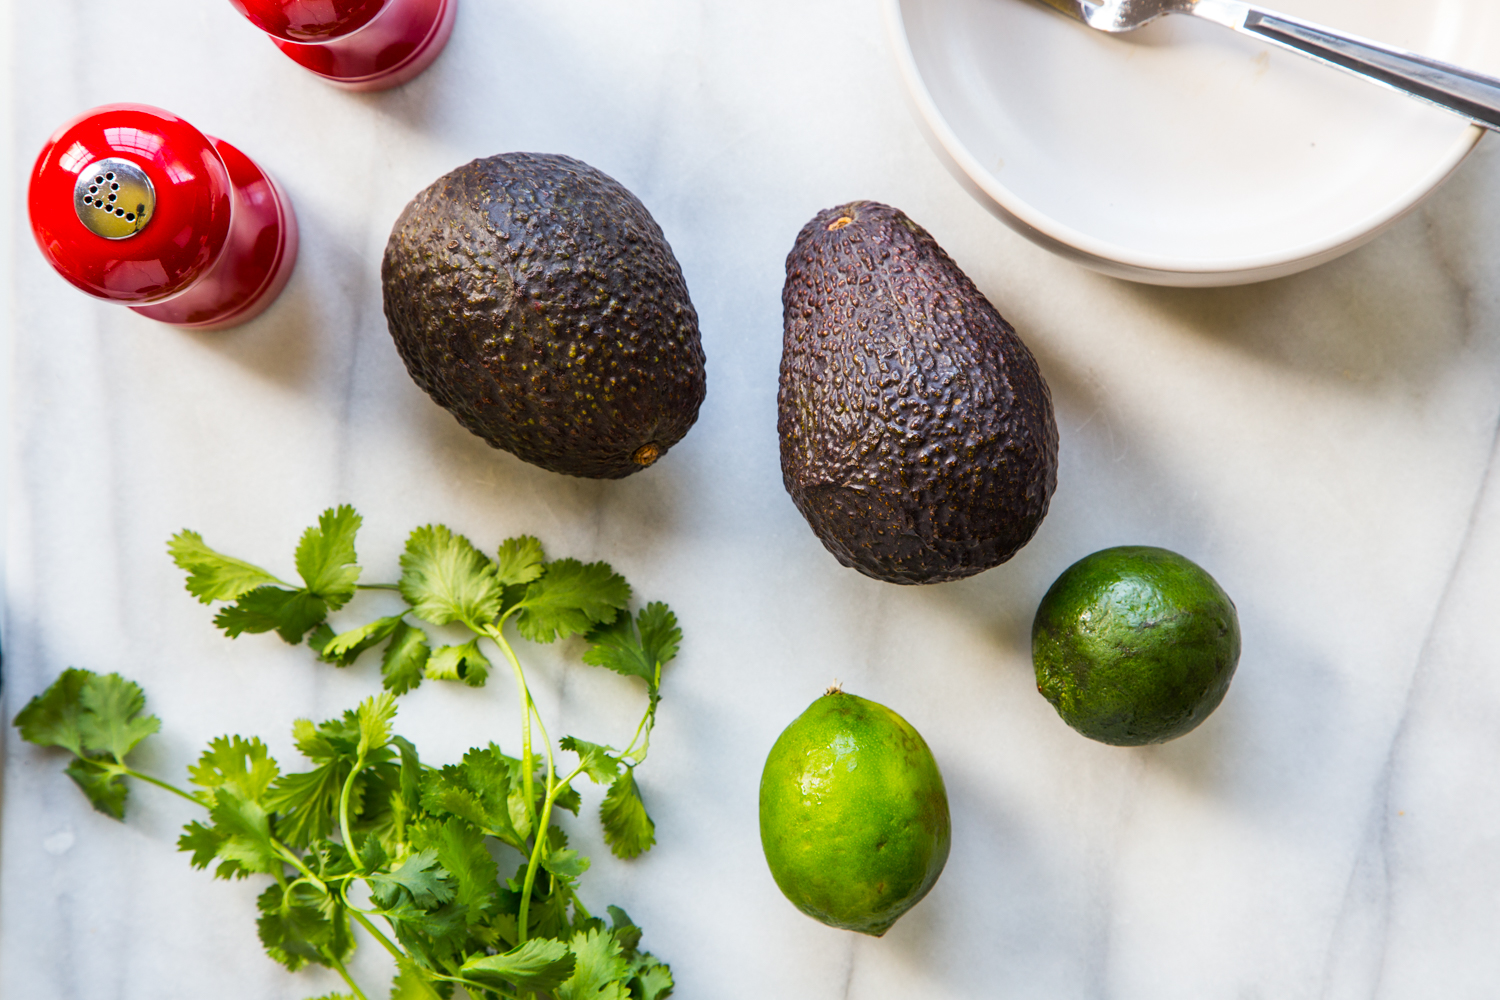 Fresh Avocados from ALDI for guacamole dogs - Homemade Hot Dog Toppings